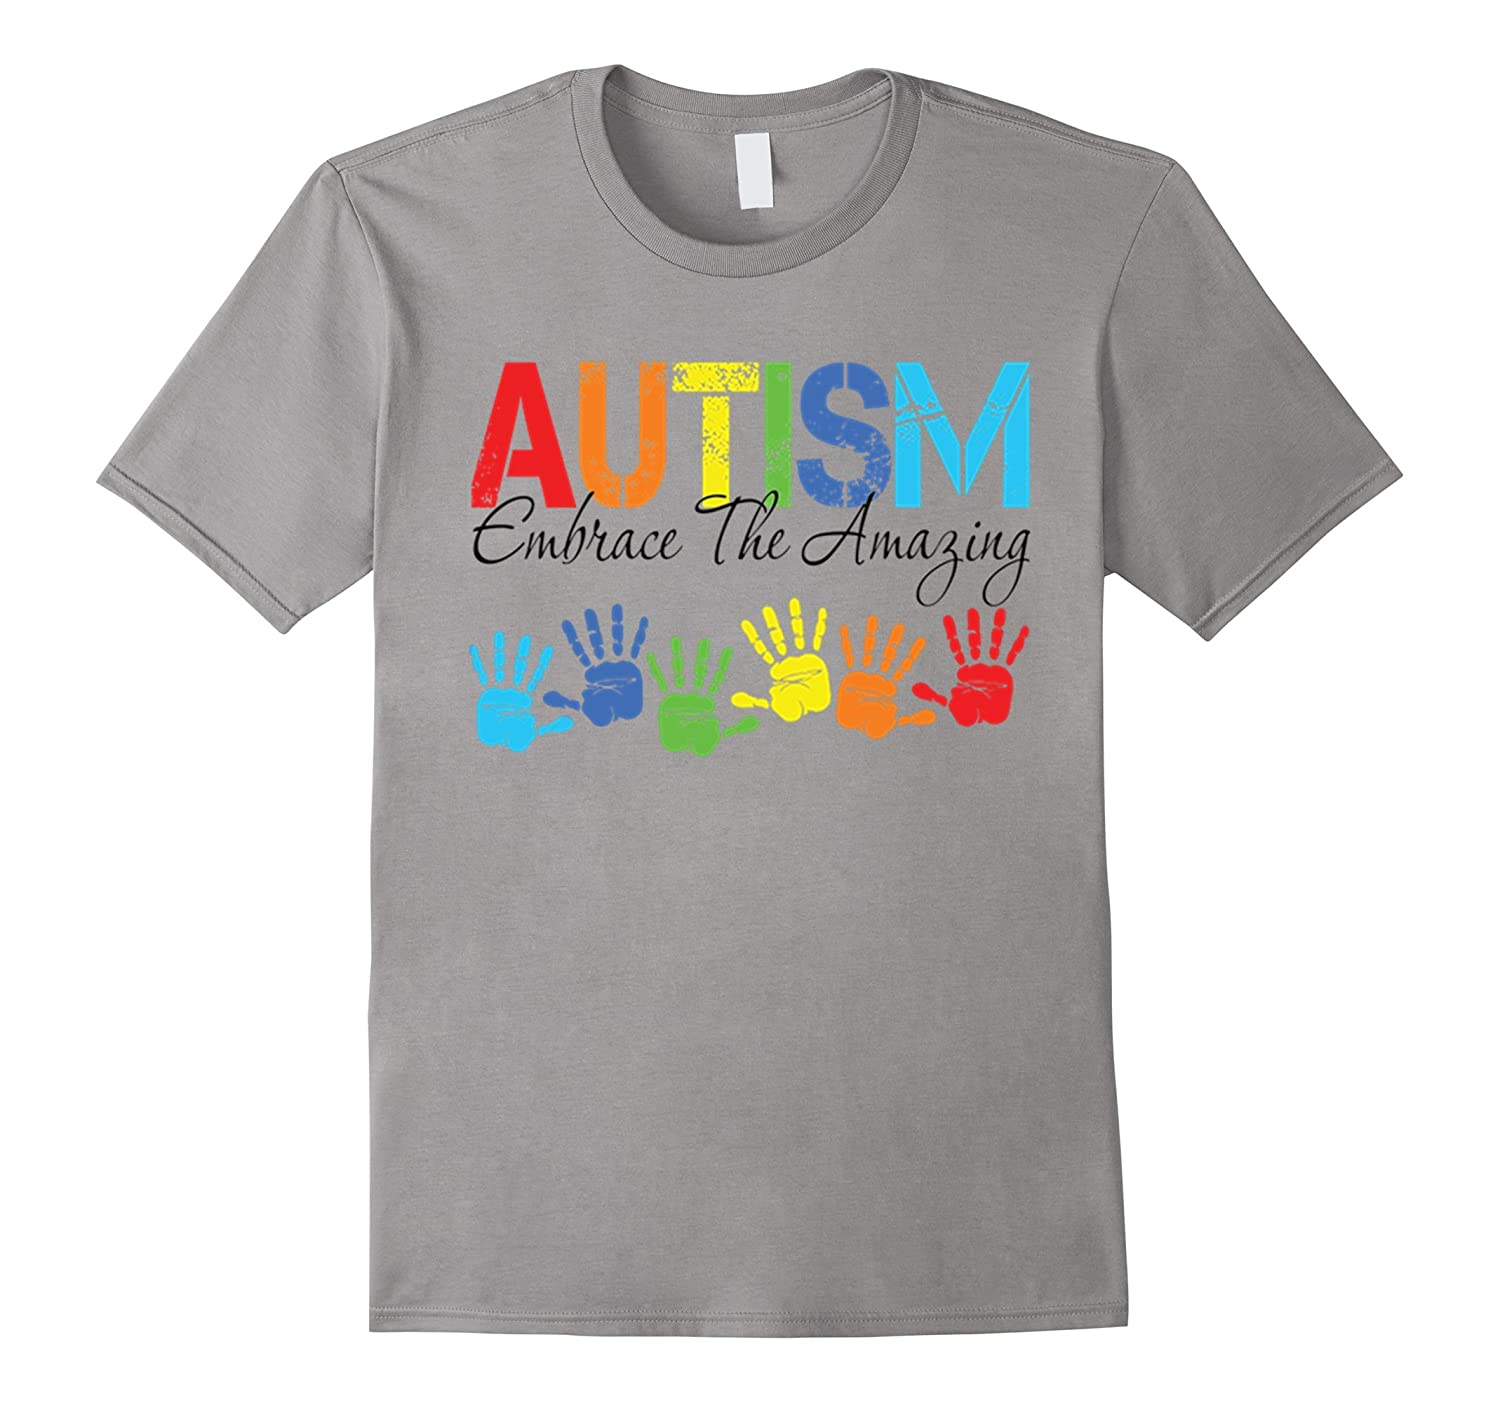 e1c07193 Autism Embrace The Amazing T-Shirt Autism Awareness Gifts-TD ...